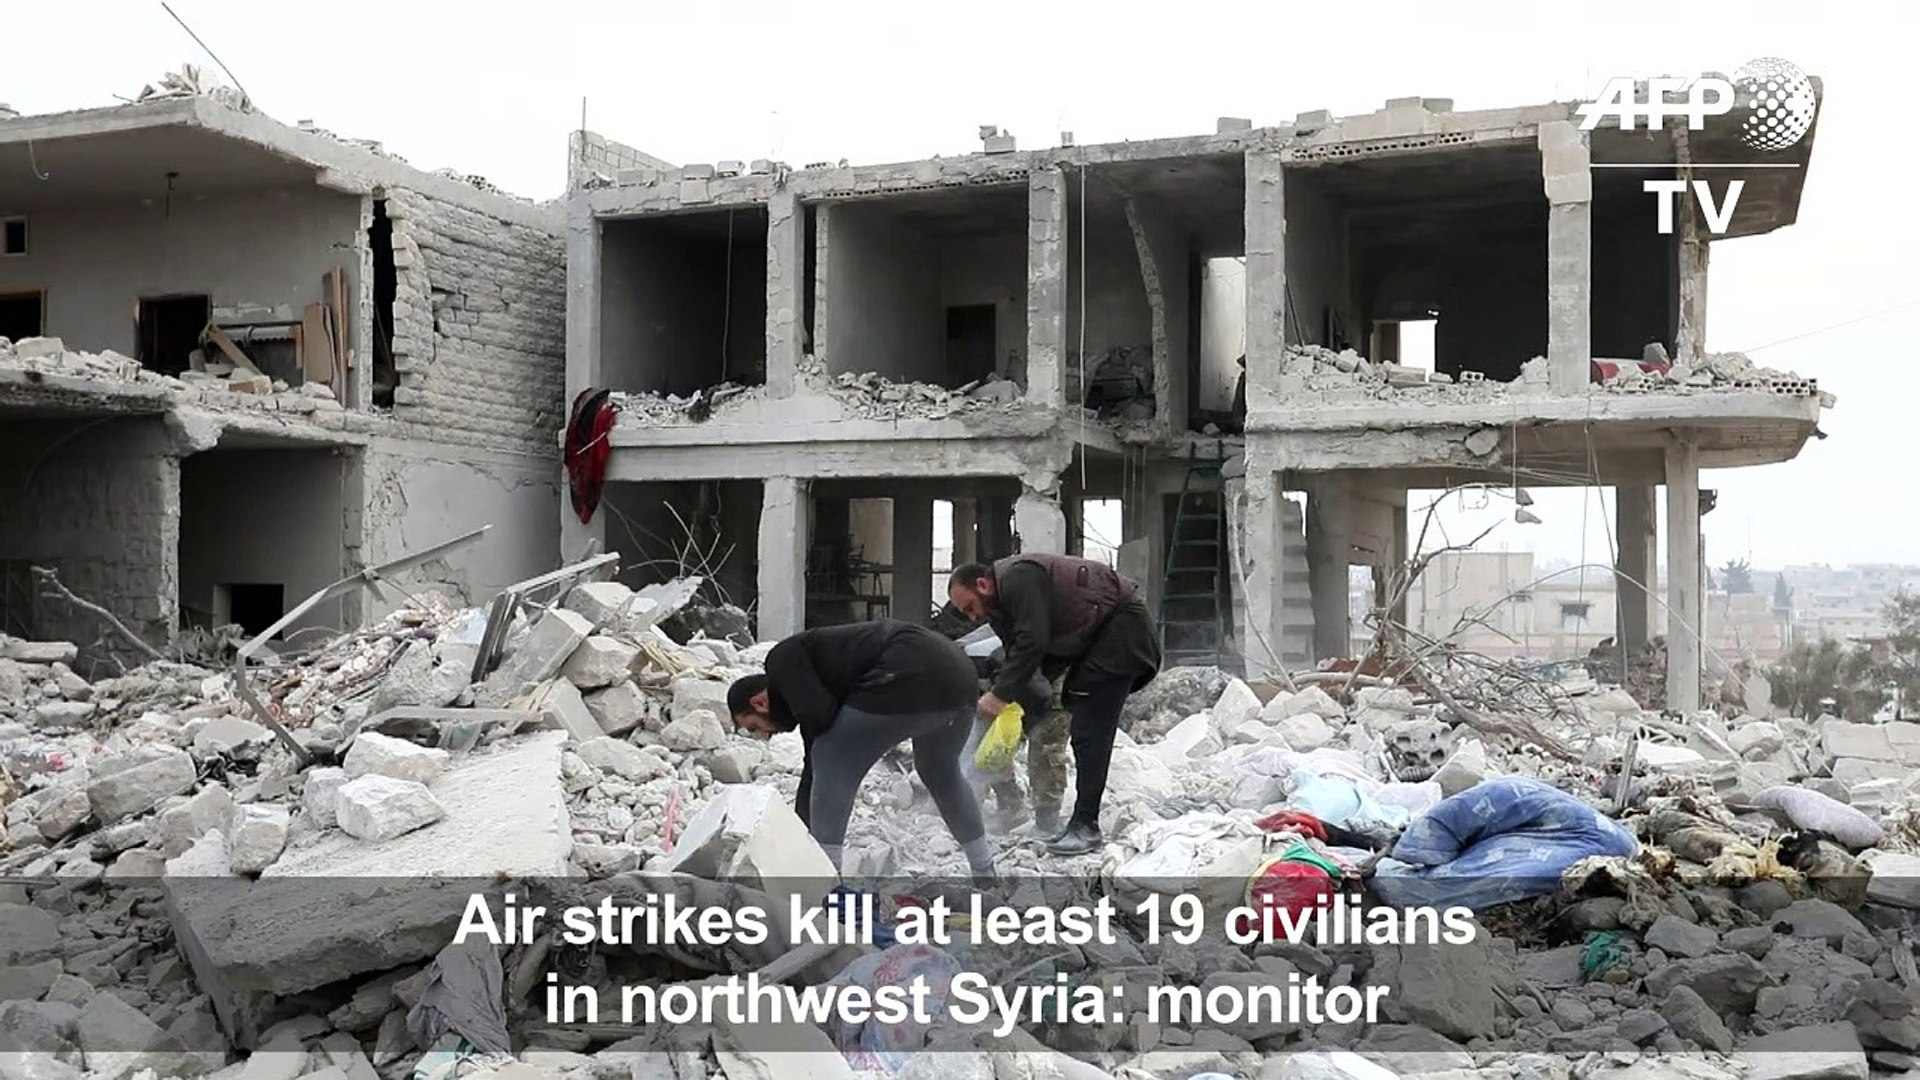 Air strikes kill at least 19 in northwest Syria: monitor